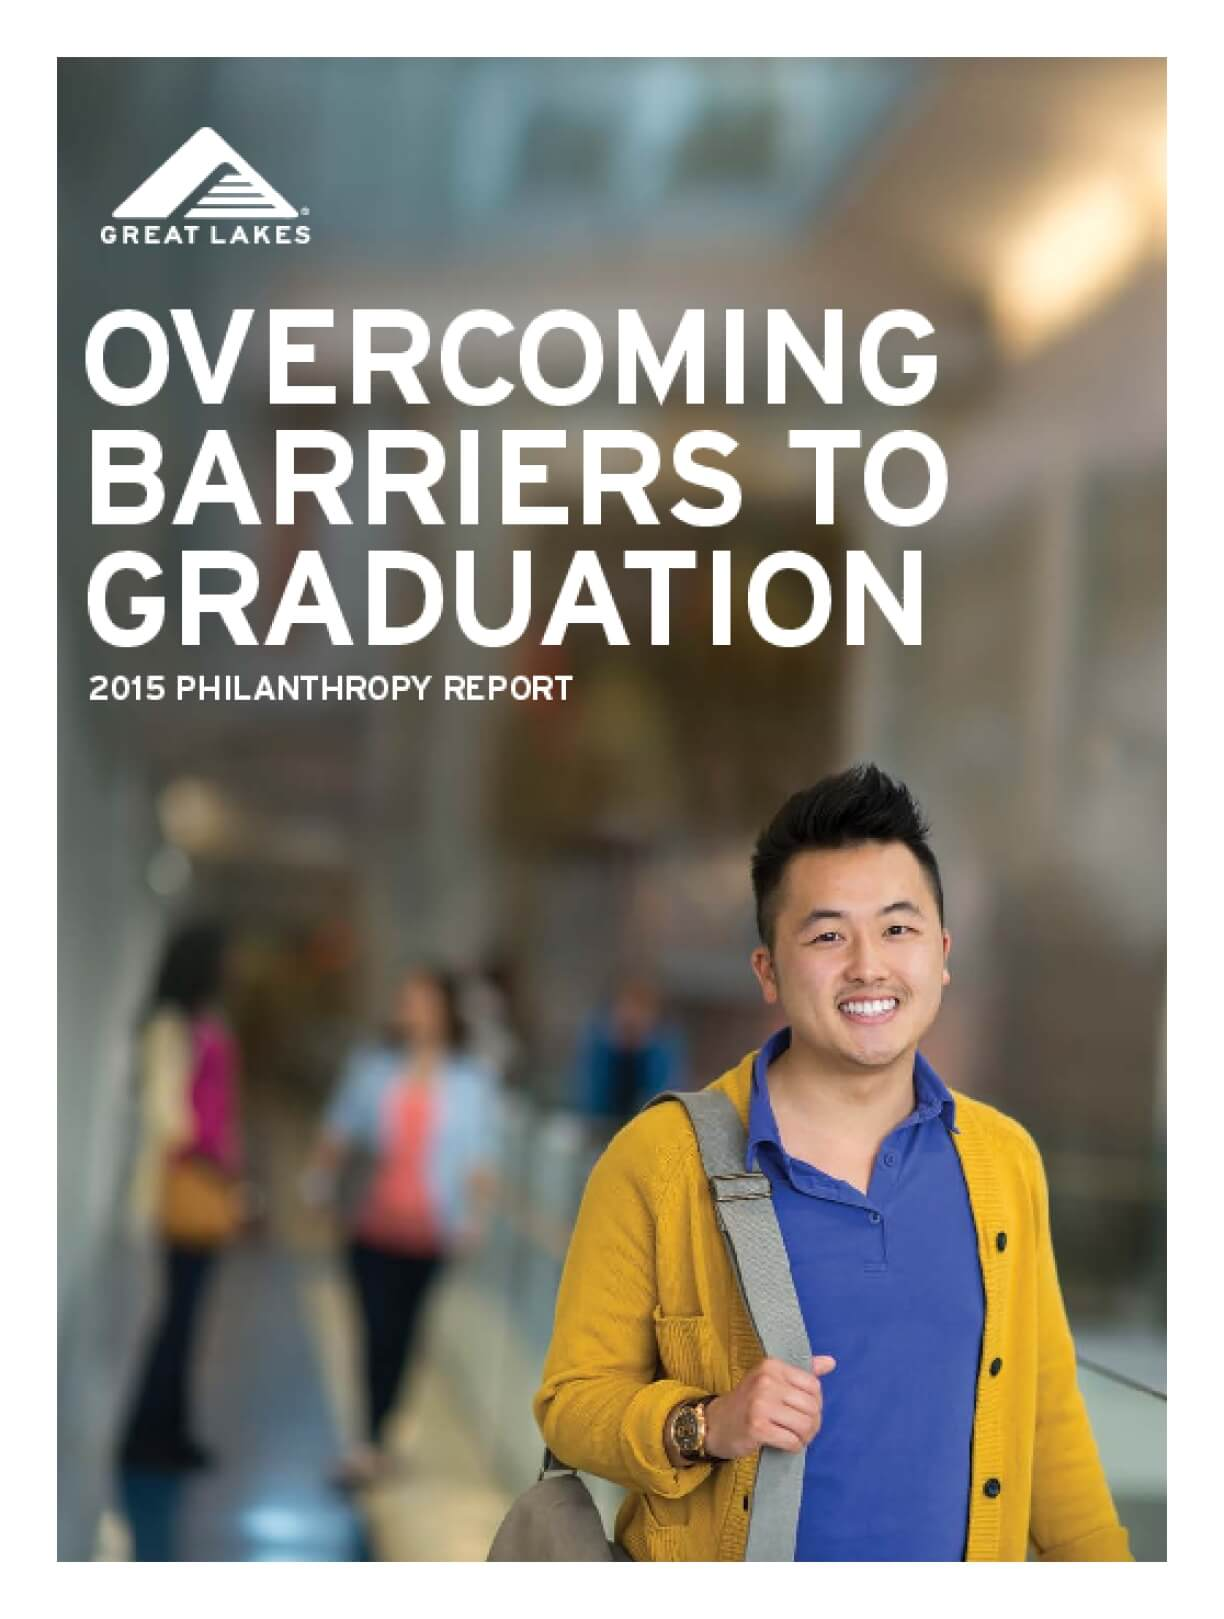 Overcoming Barriers to Graduation: Great Lakes 2015 Philanthropy Report